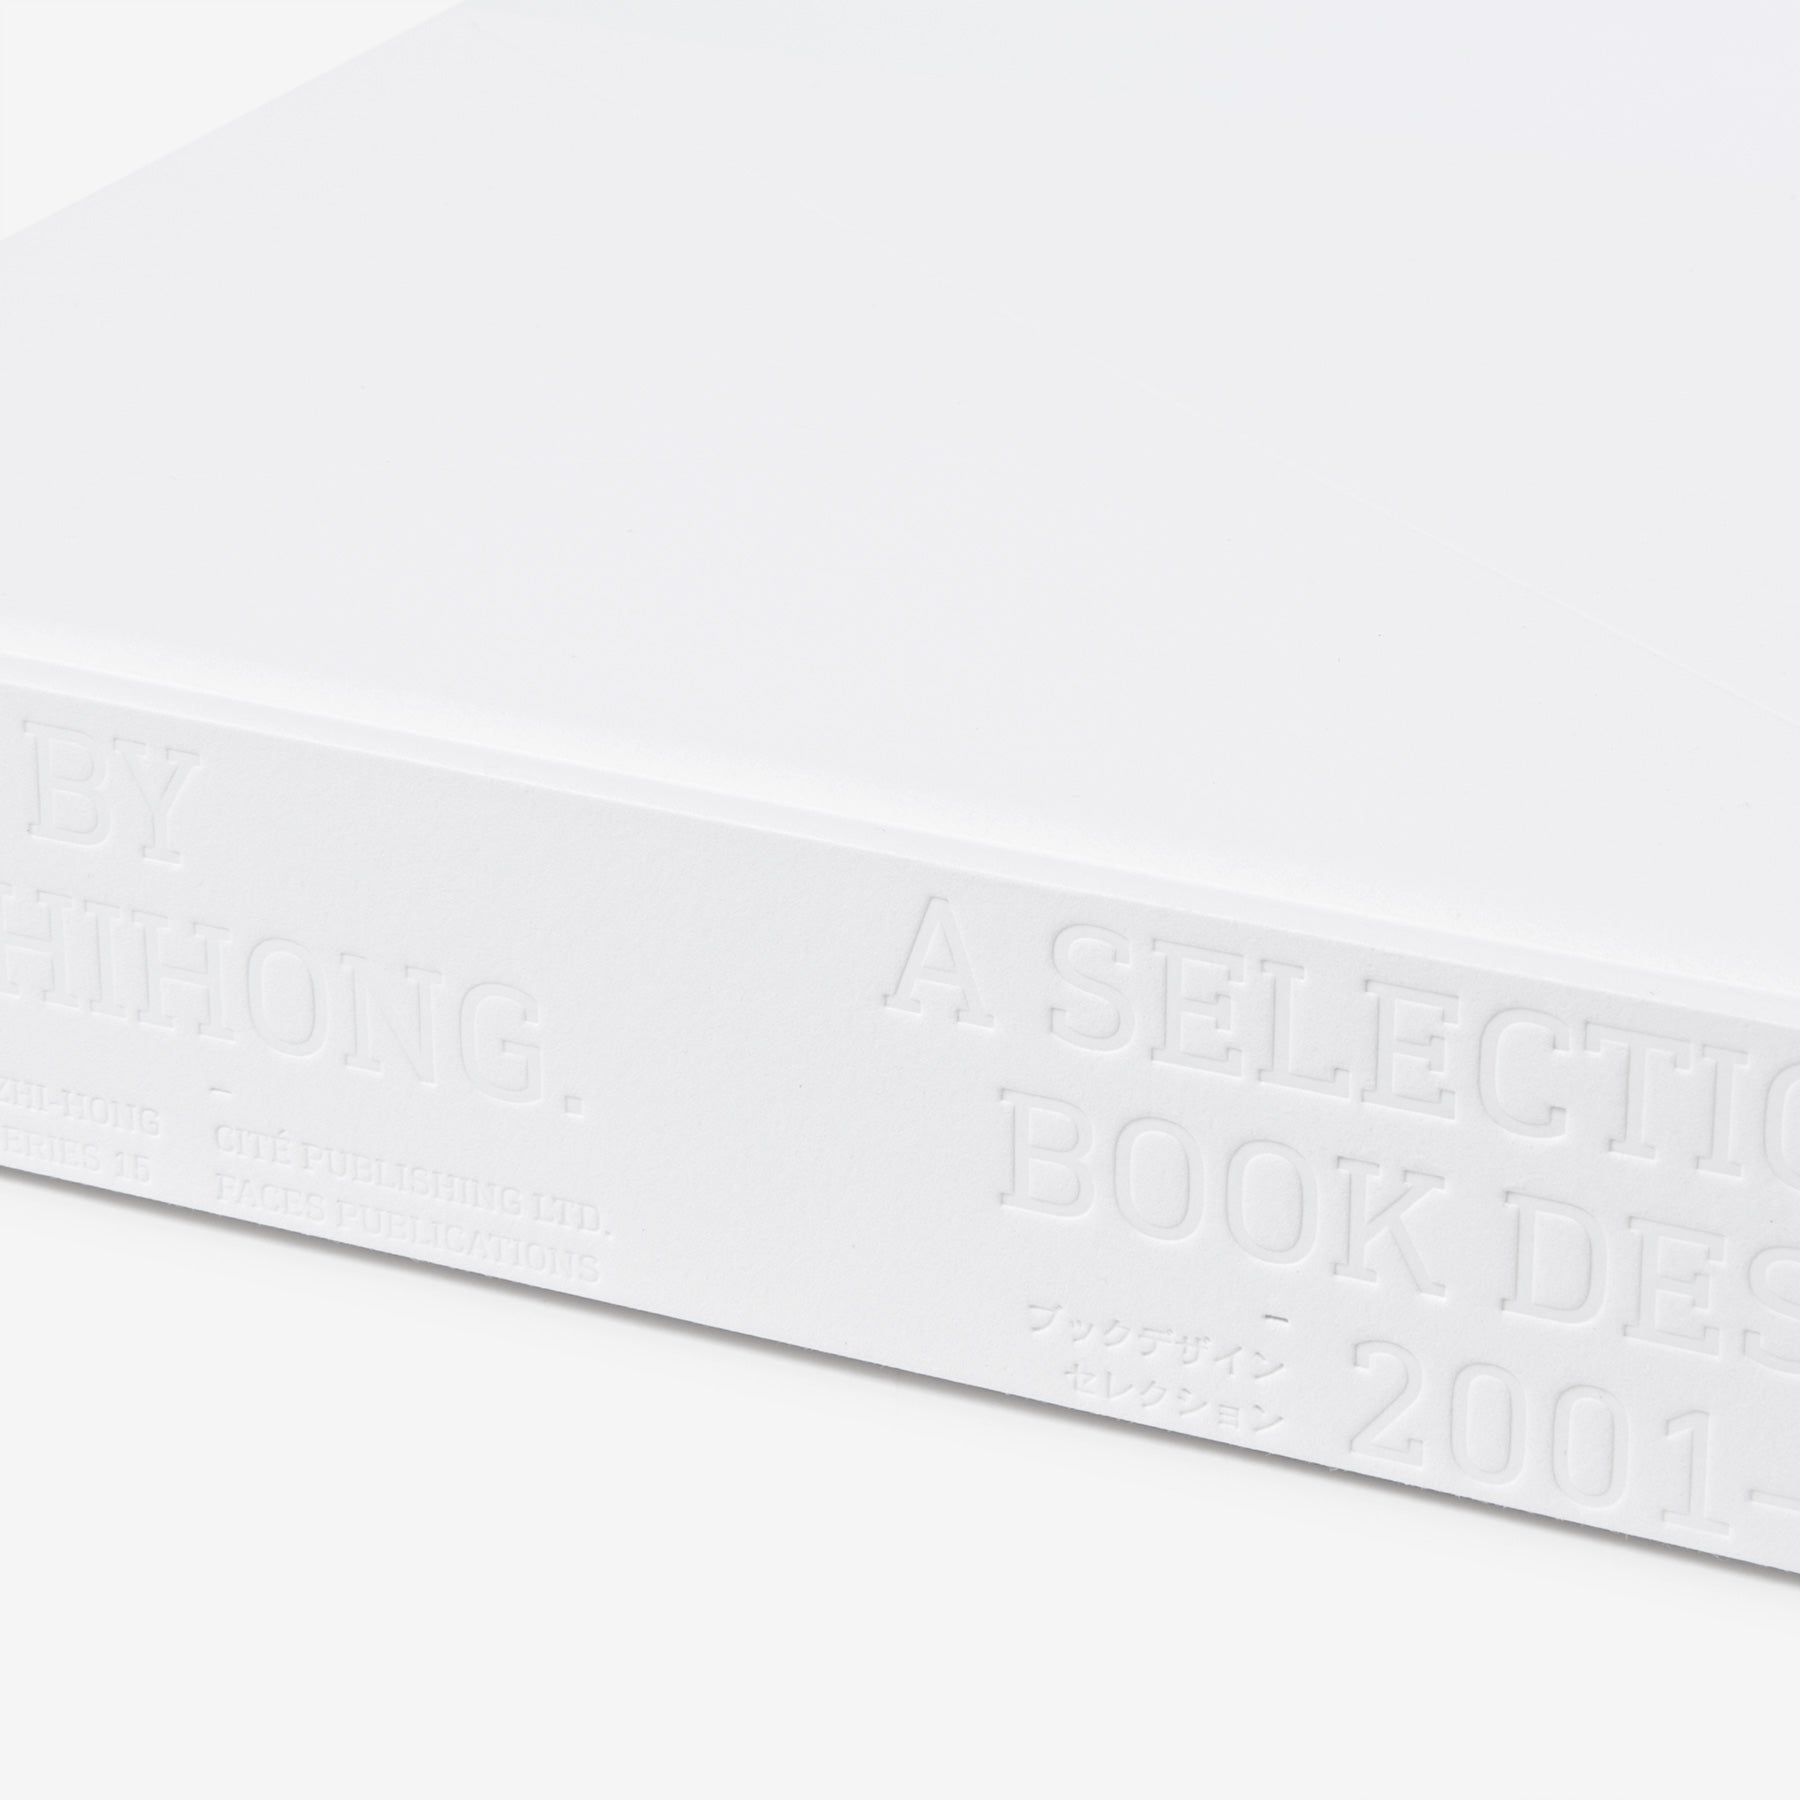 Pages: 504 | Dimensions: 245 × 178 mm / 9.6 × 7"